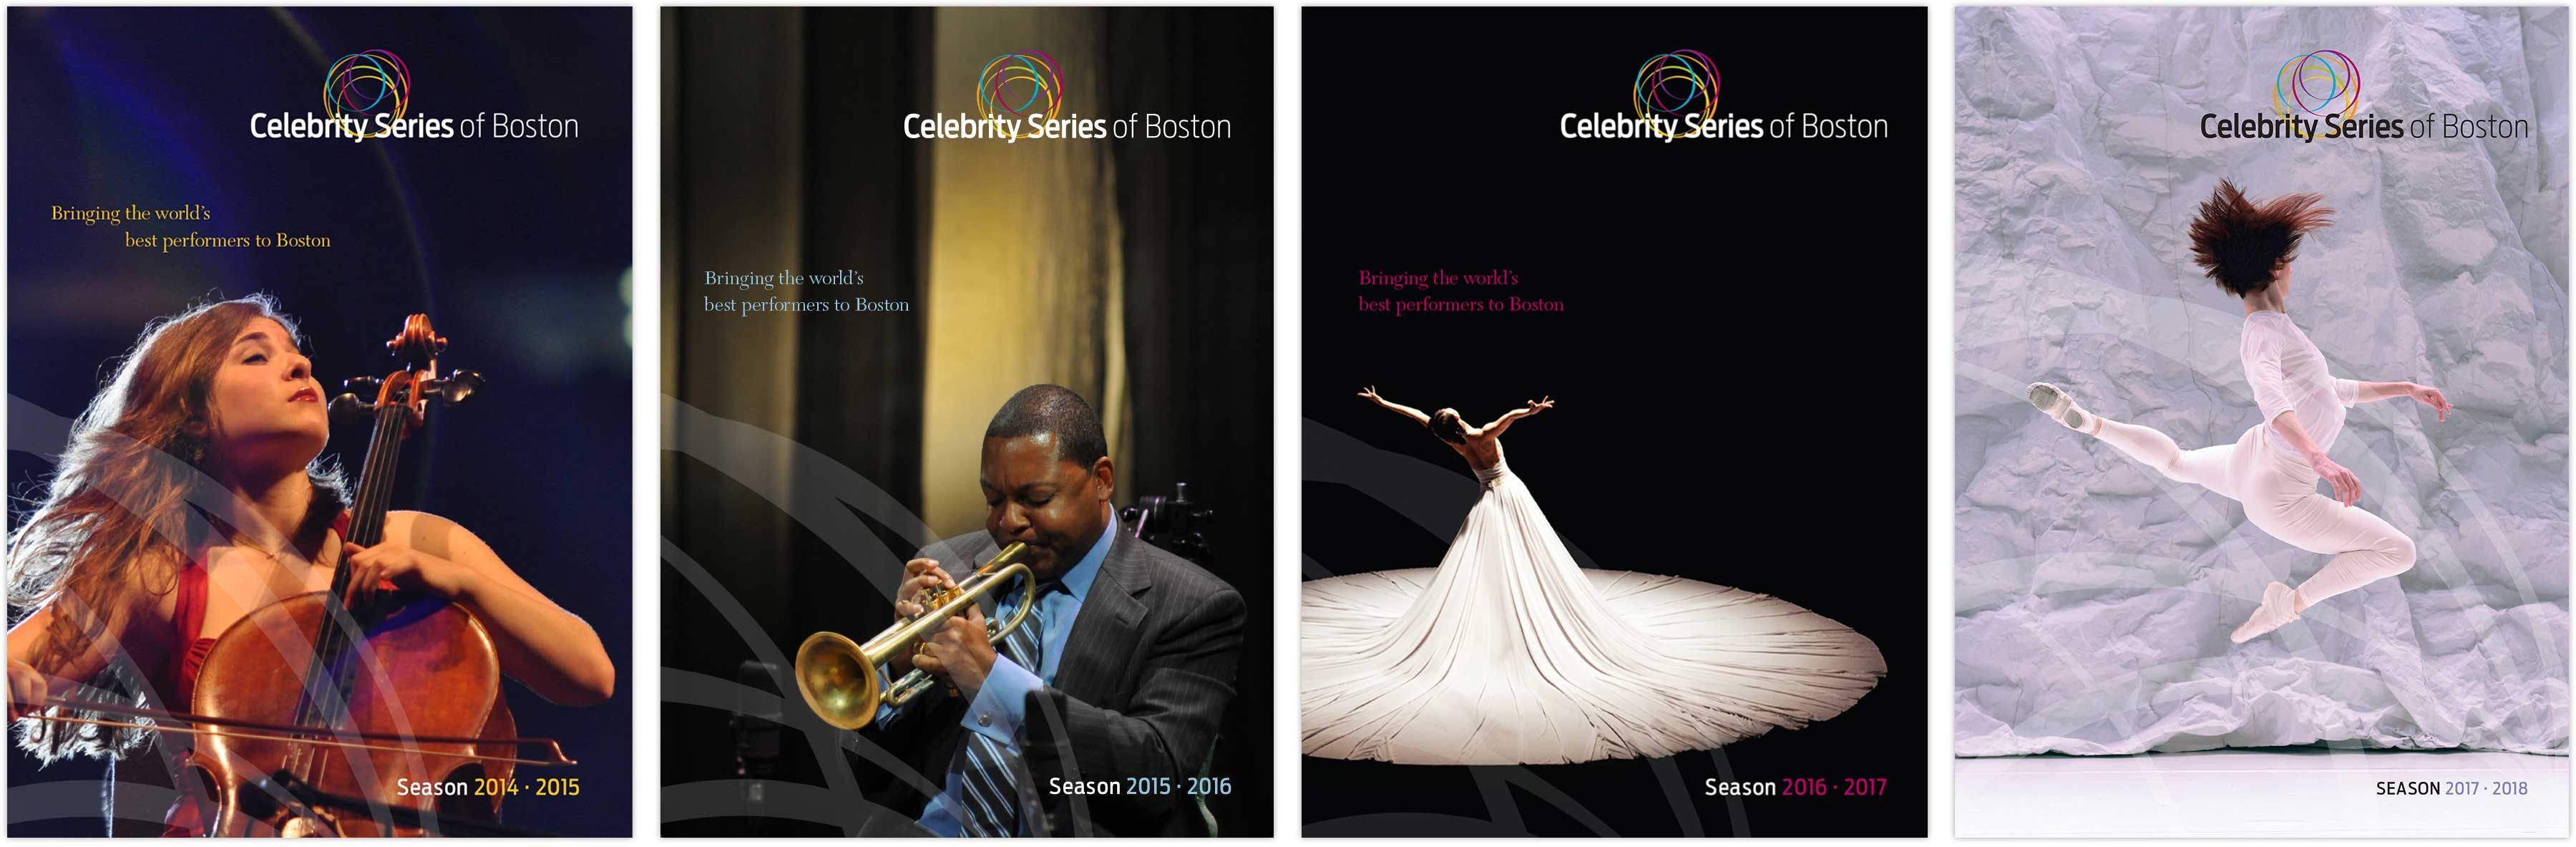 Celebrity Series Boston season brochure covers